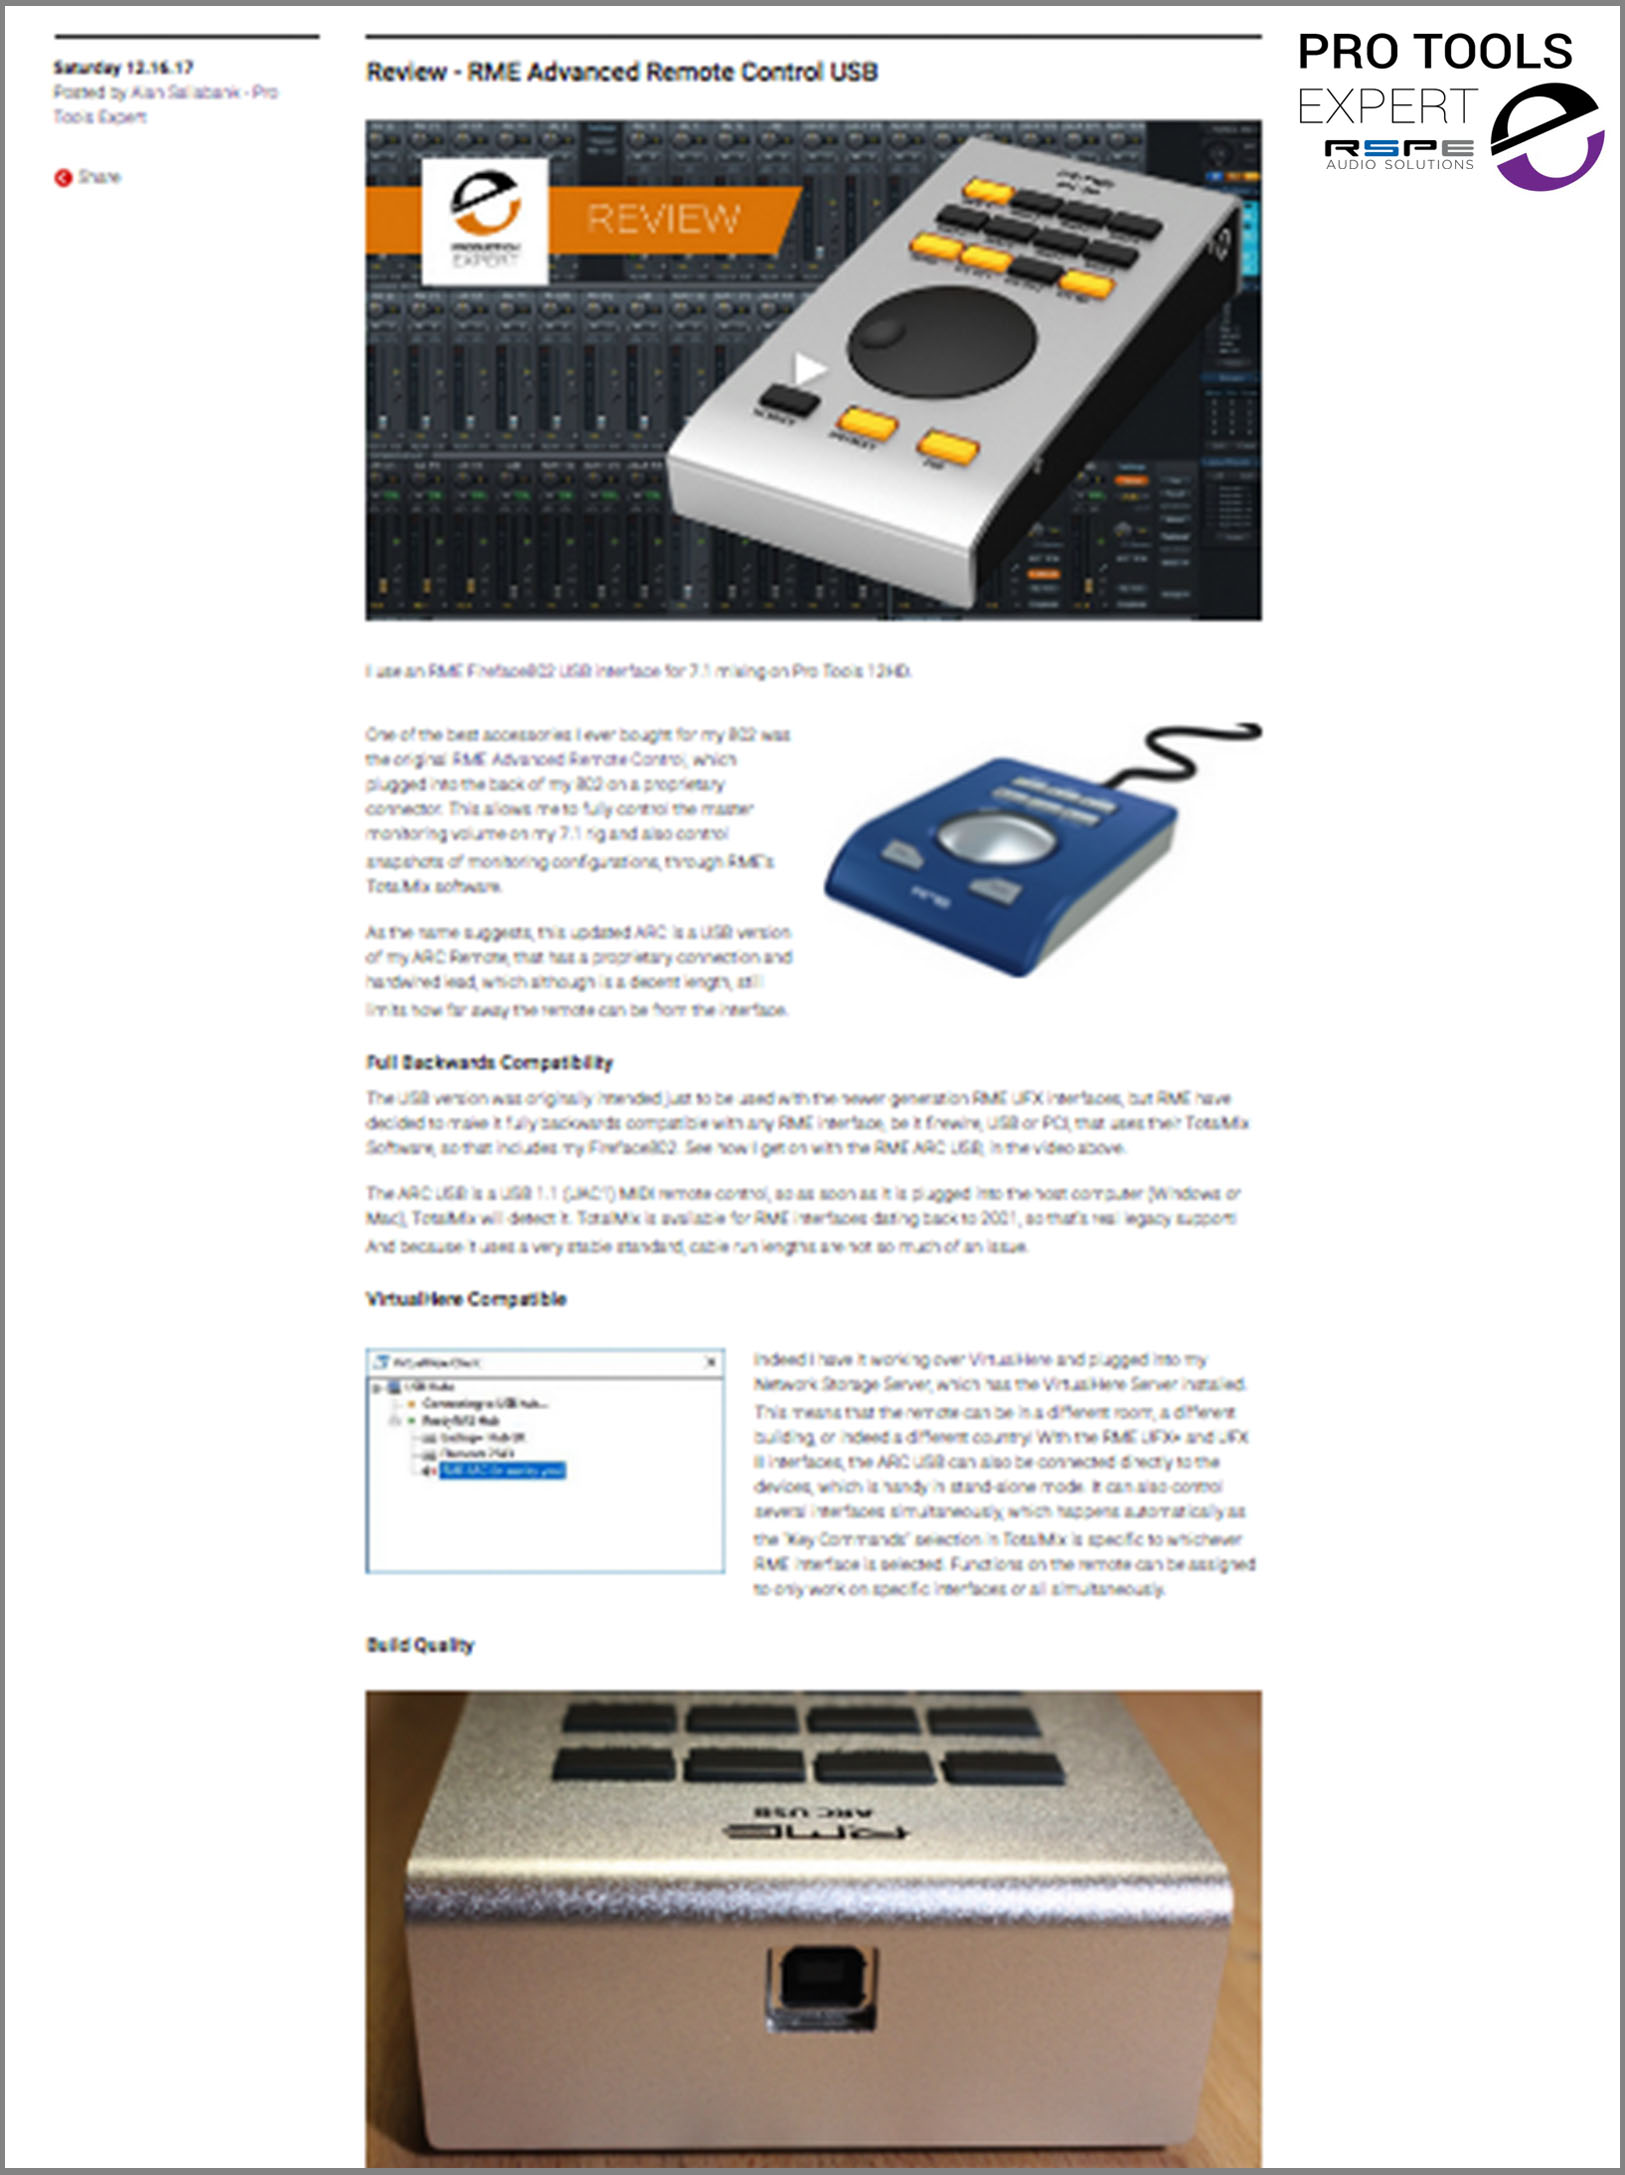 RME ARC USB Review - Pro Tools Expert - Synthax Audio UK